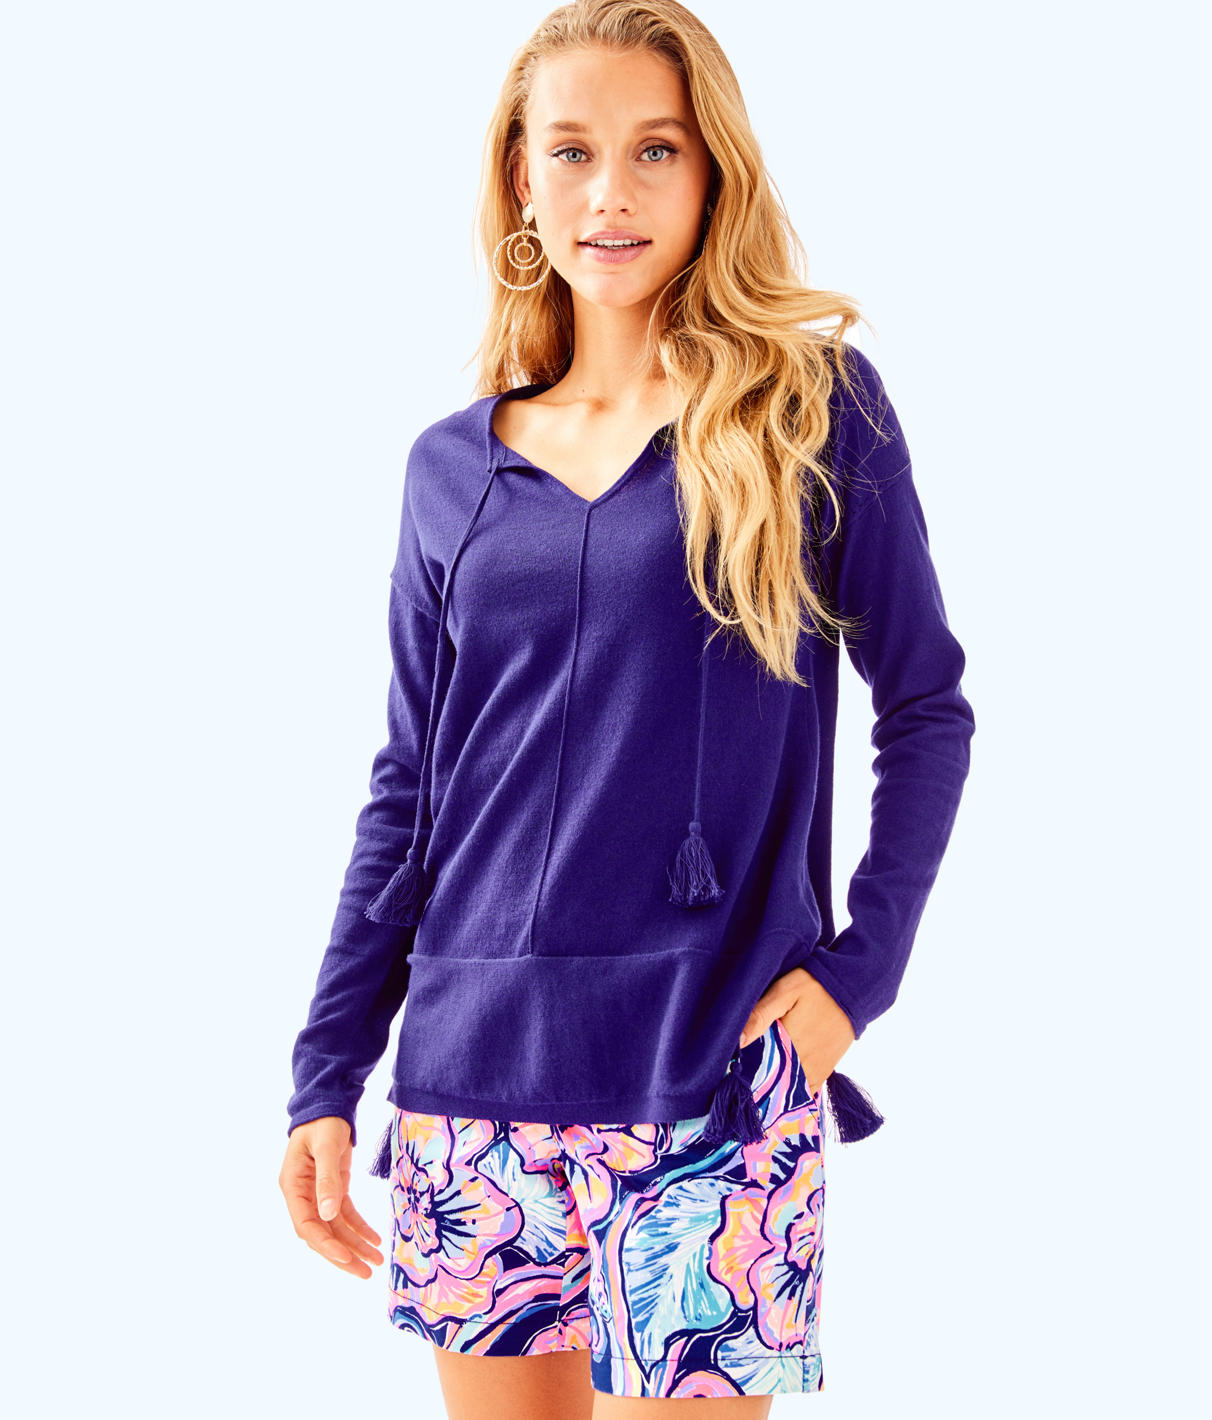 Lilly Pulitzer Lilly Pulitzer Womens Colene Sweater